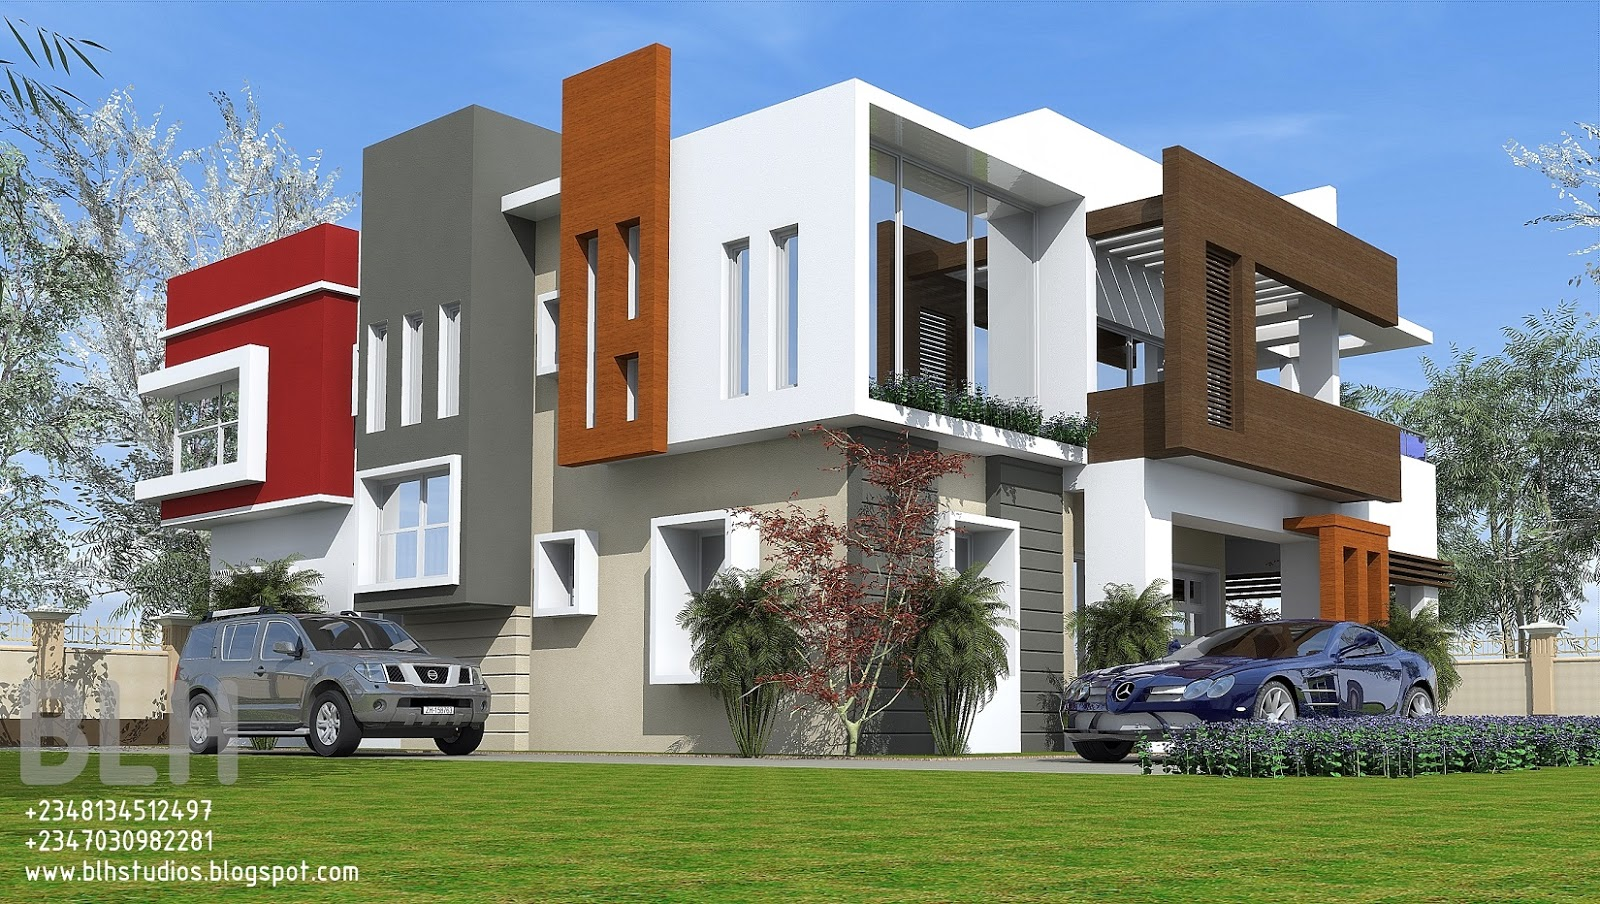 Architectural designs by blacklakehouse 5 bedroom duplex for 5 bedroom duplex